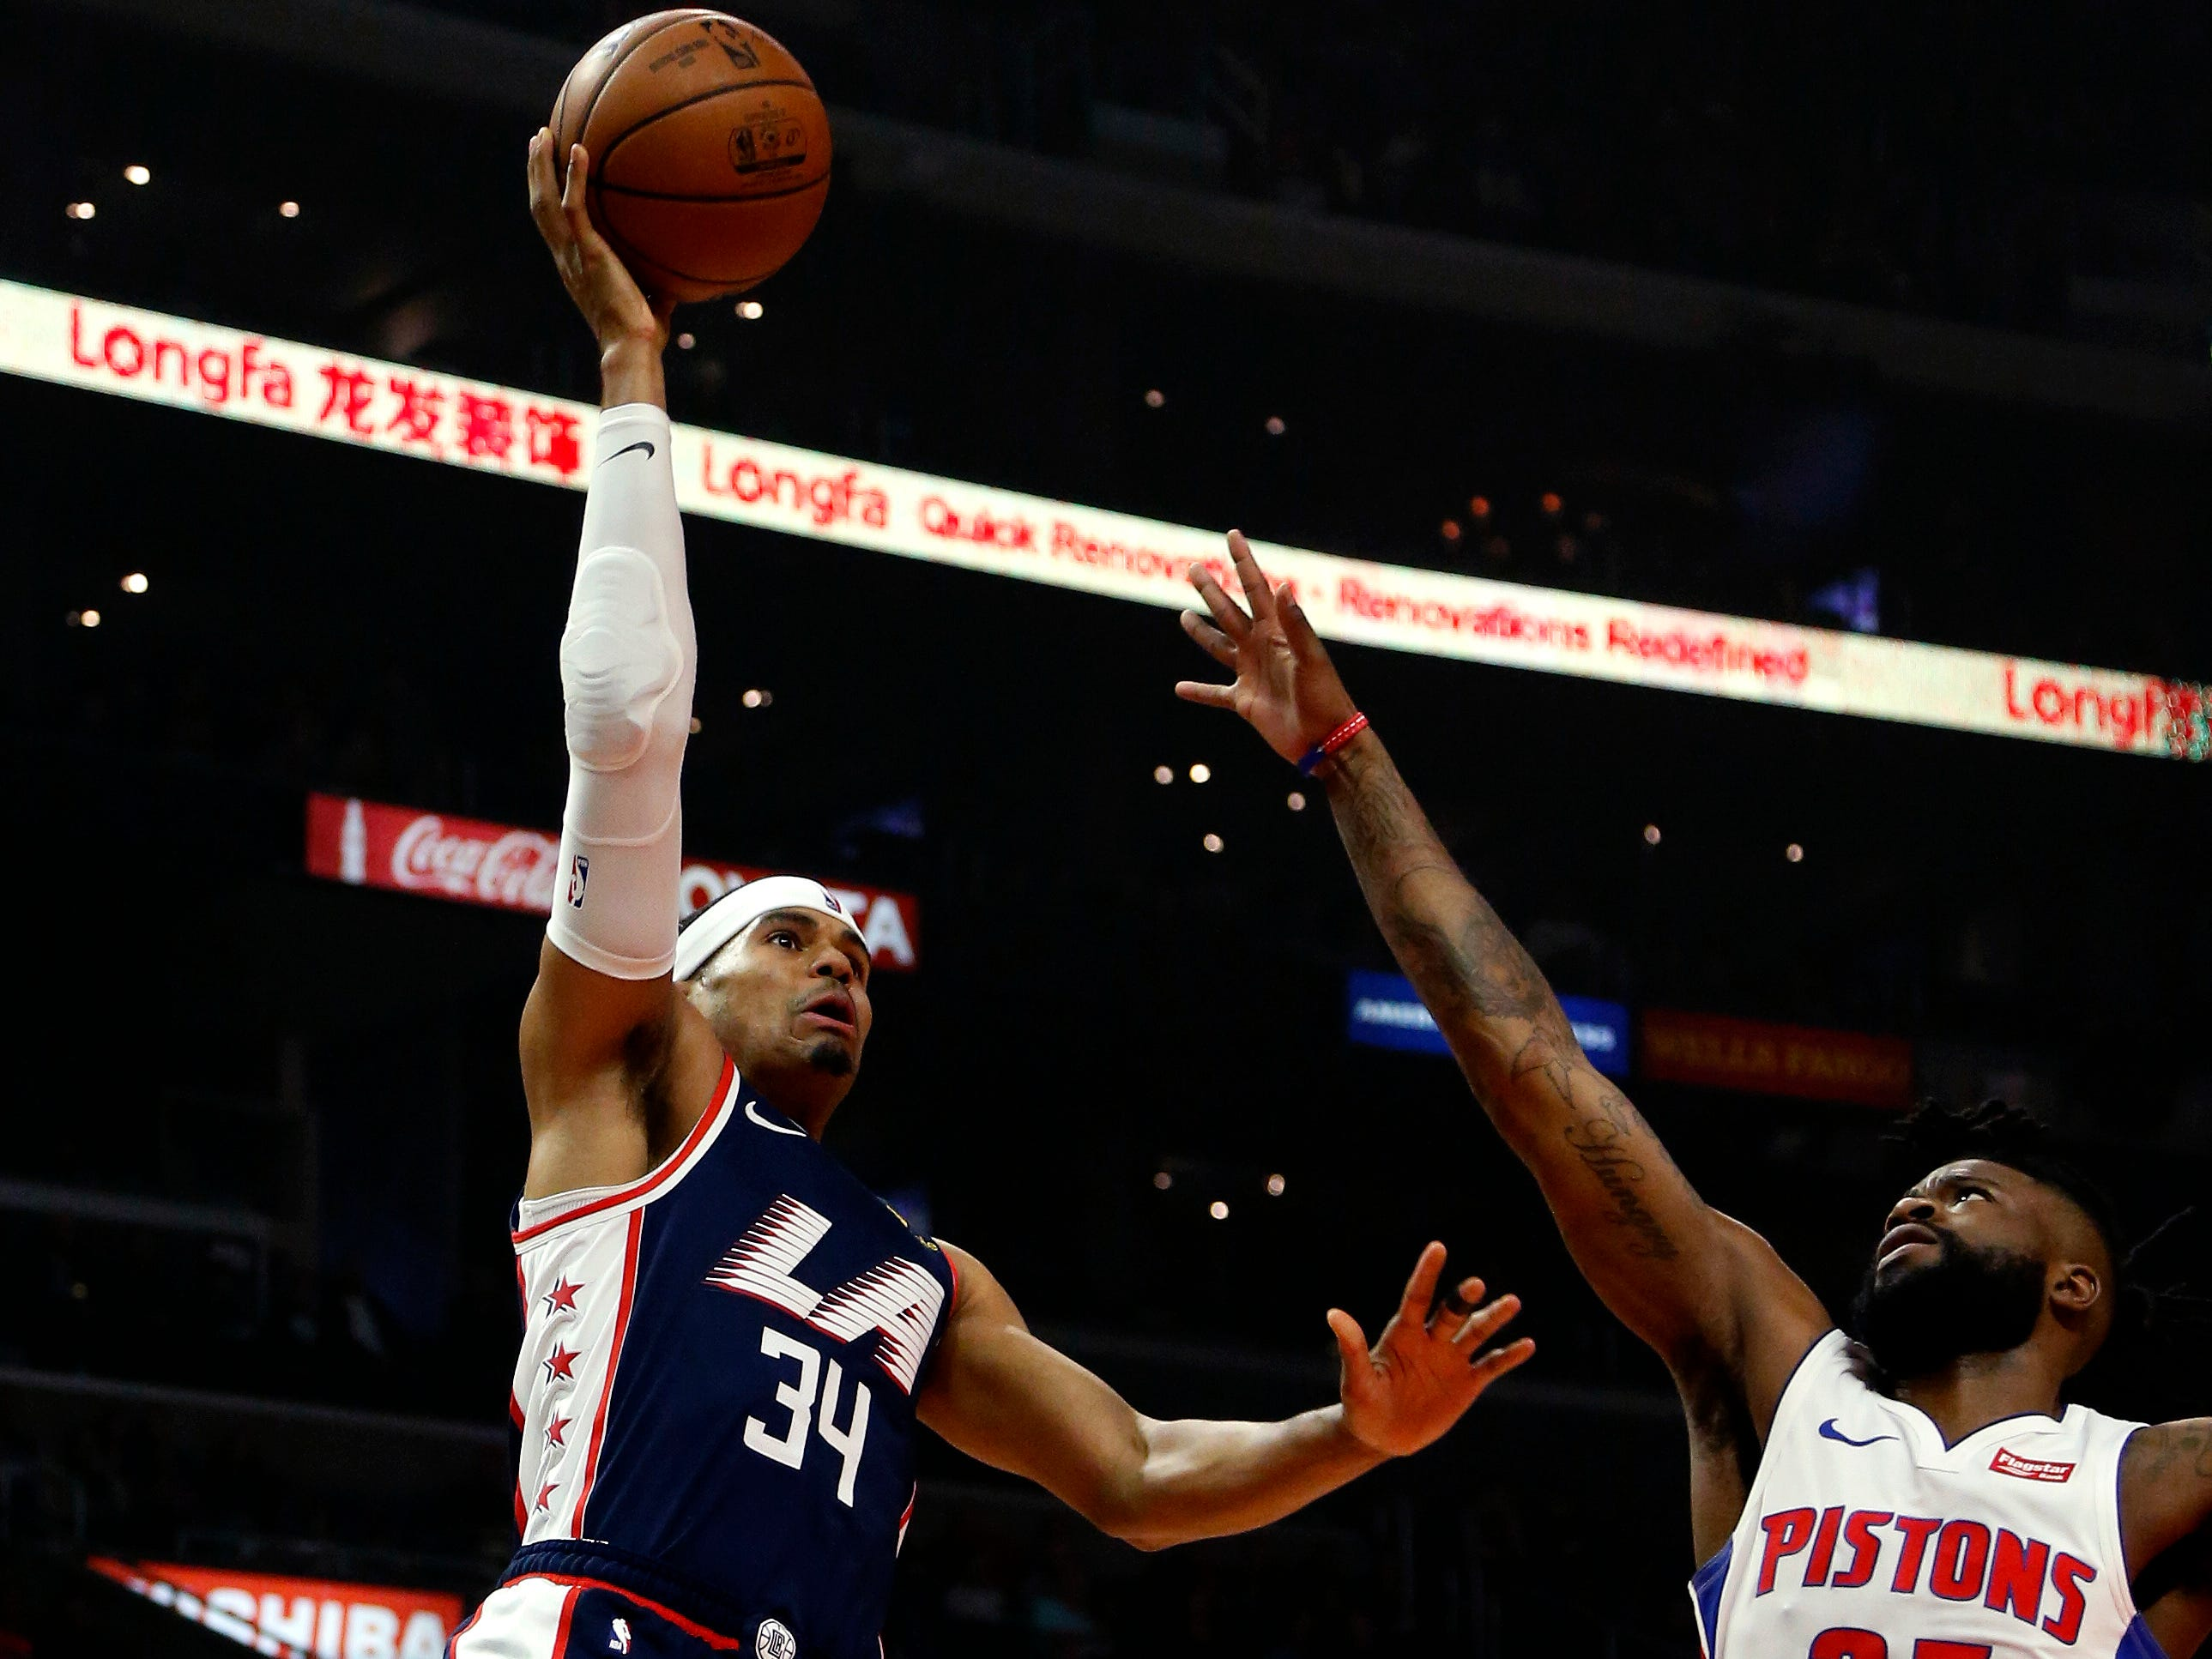 Clippers forward Tobias Harris shoots against Pistons guard Reggie Bullock during the first half Jan. 12, 2019, in Los Angeles.